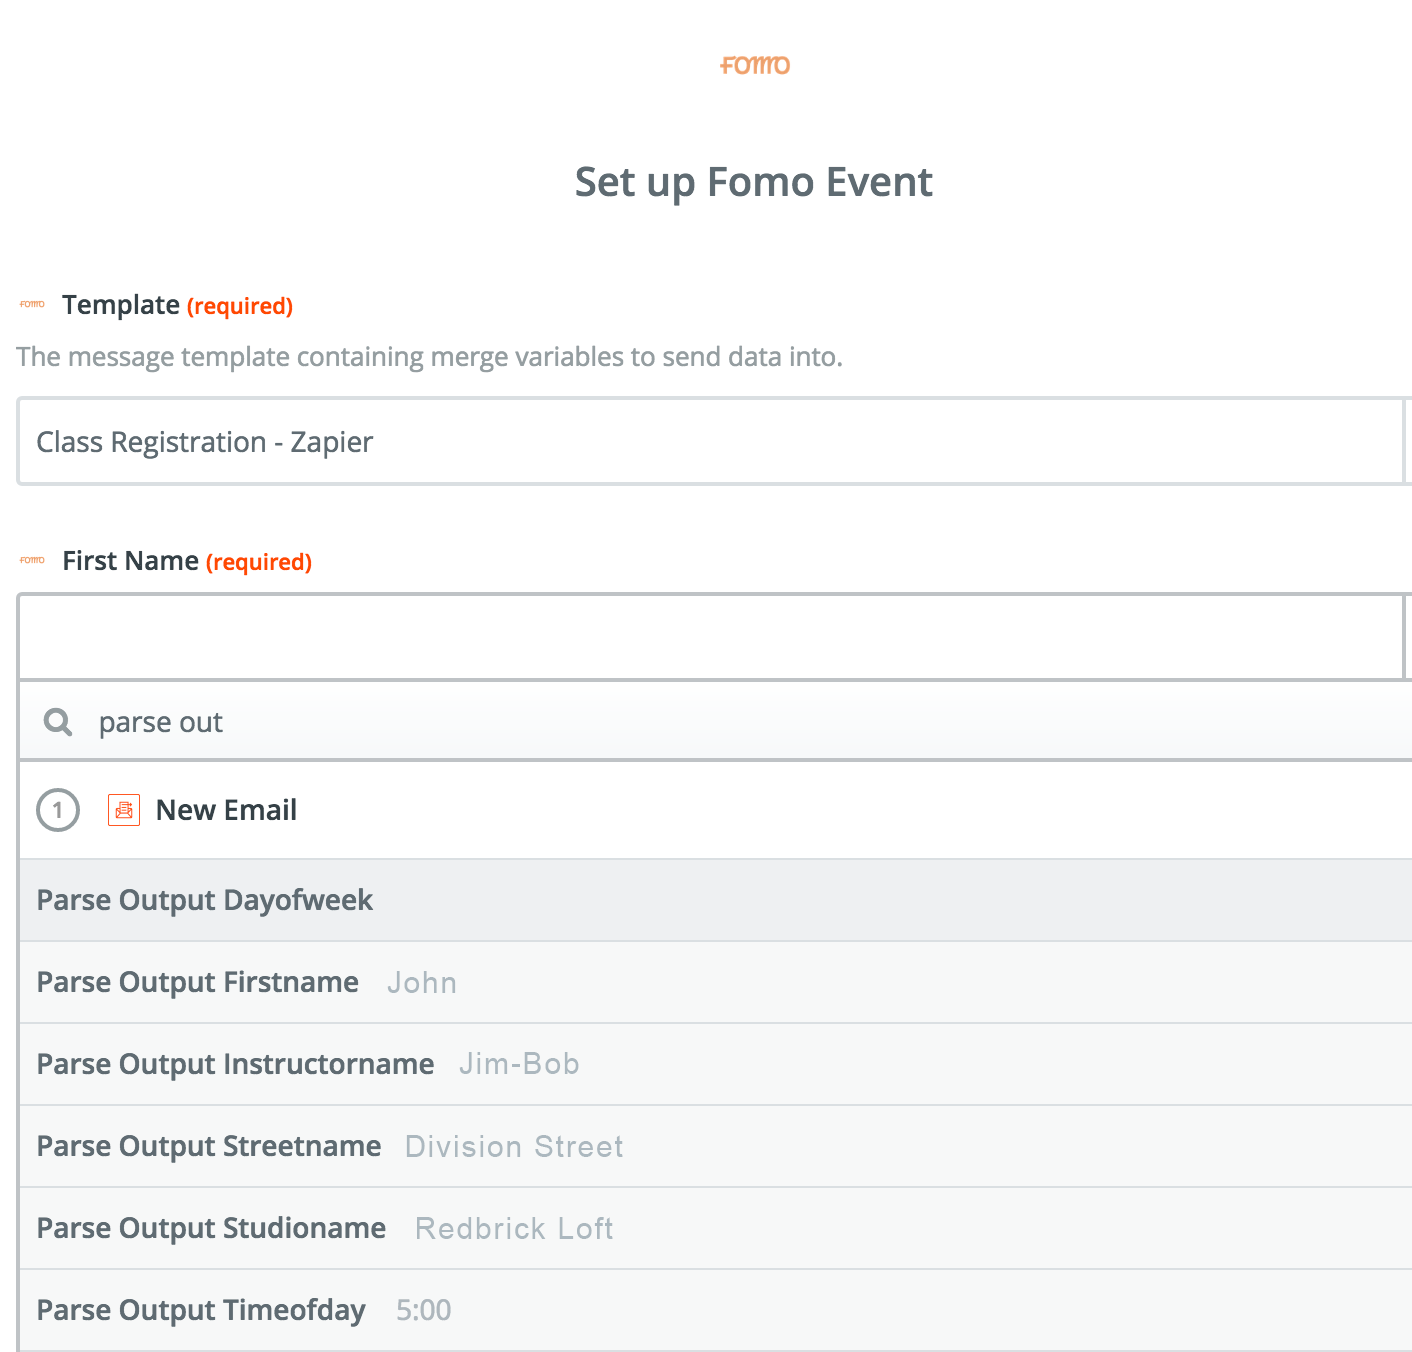 Zapier Email Parser and Fomo integration, setting up the Zapier action